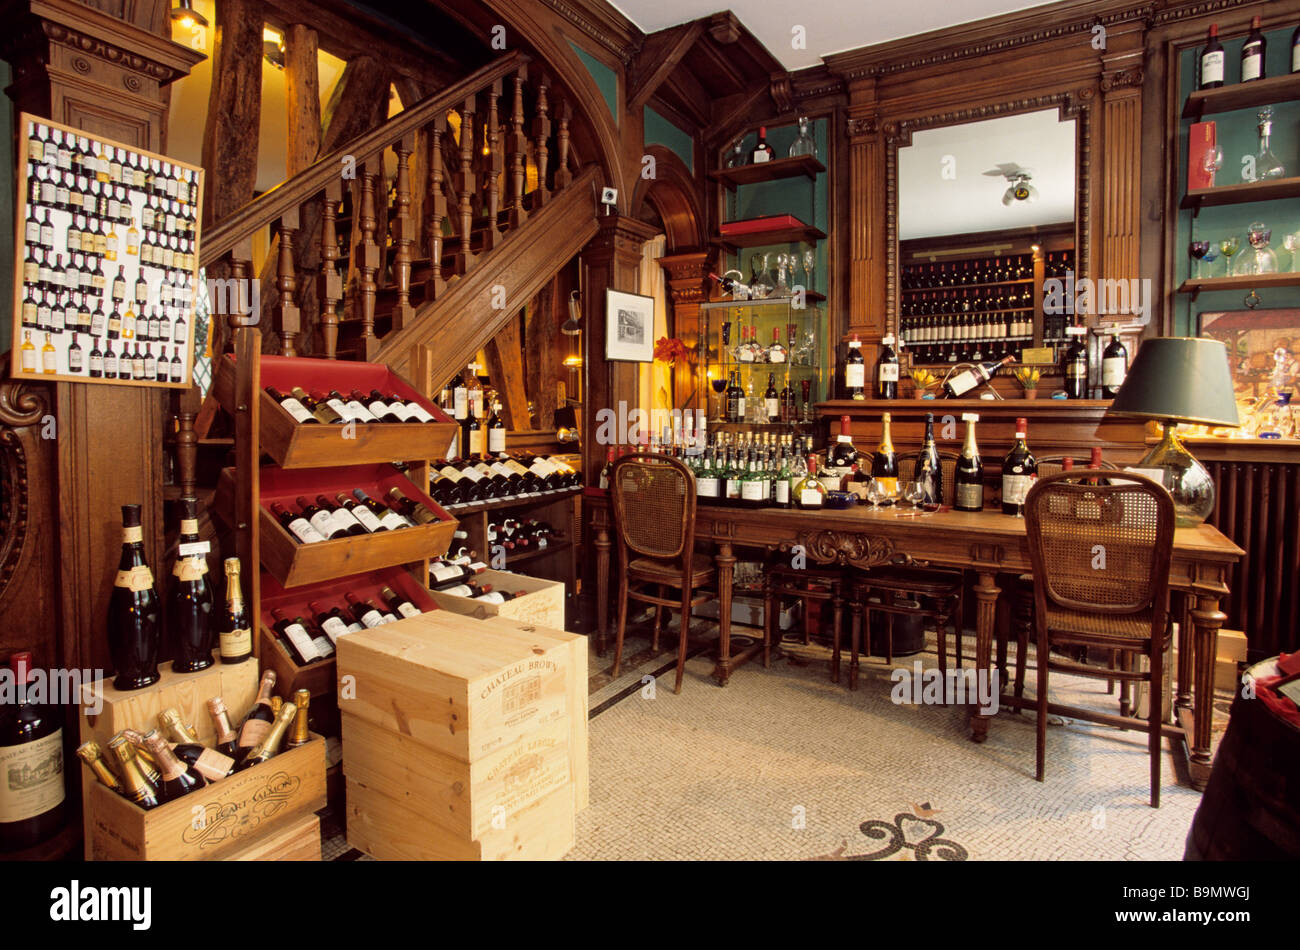 france paris rue du bac ryst dupeyron fine wines shop stock photo royalty free image. Black Bedroom Furniture Sets. Home Design Ideas